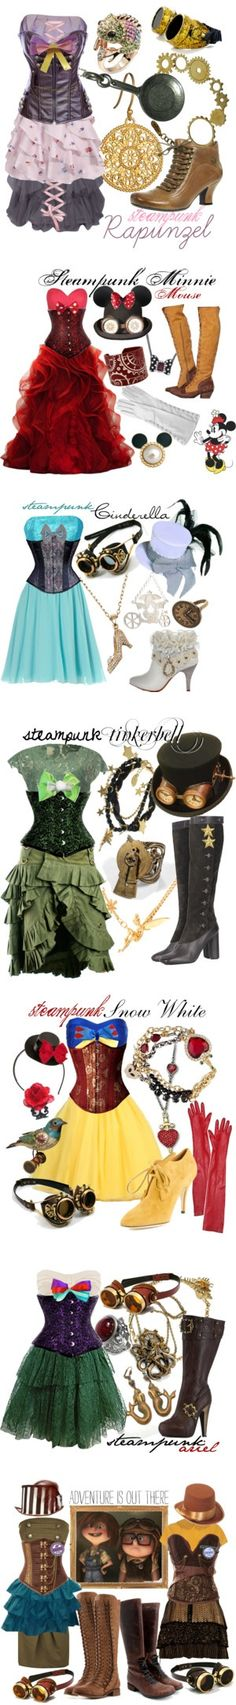 Disney Steampunk by princesschandler on Polyvore. The last one should also have a boy version. For couples.